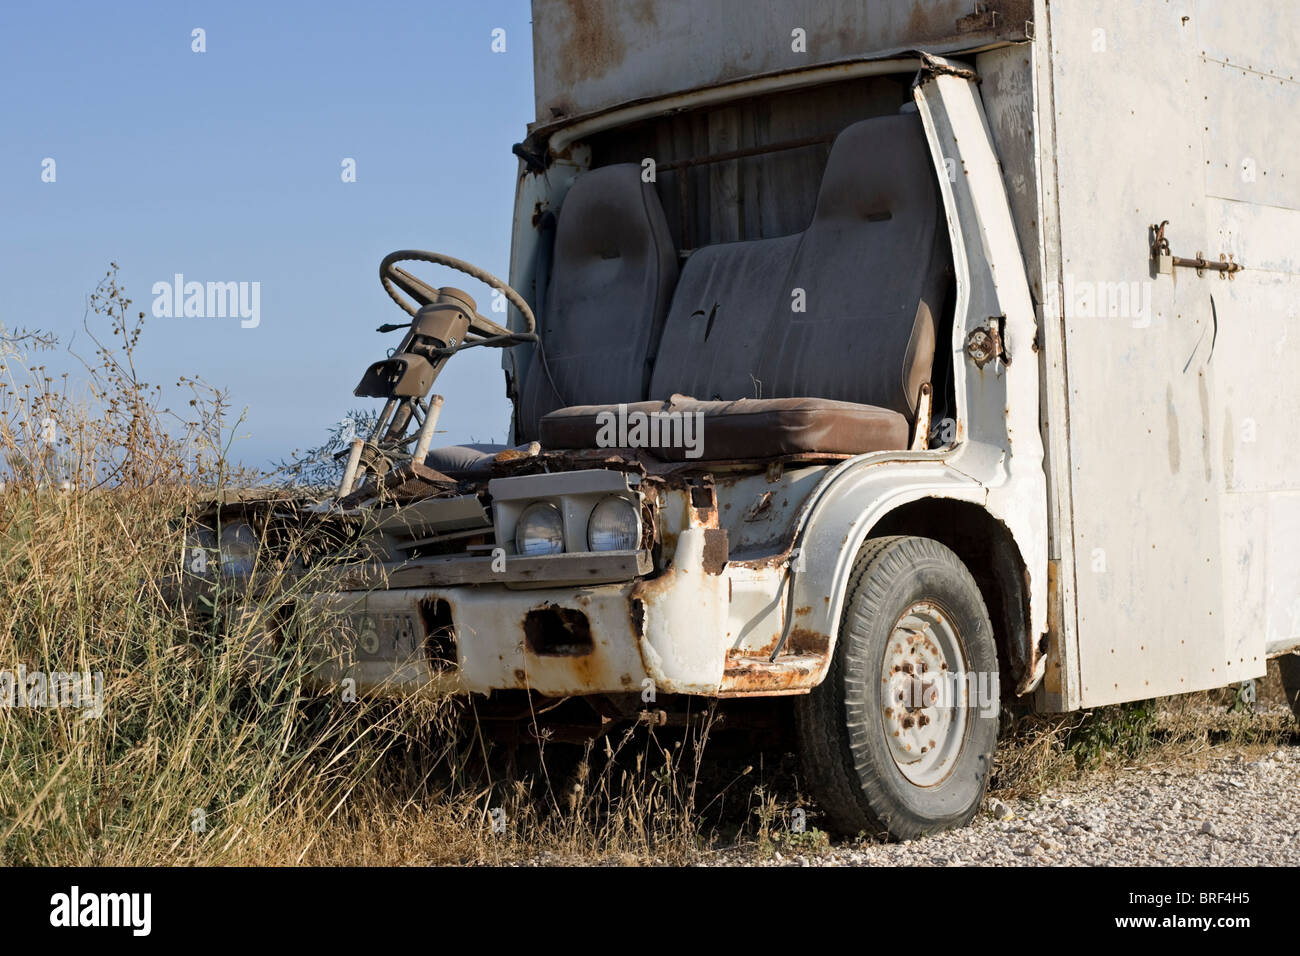 An old broken down Van left  to rust on a dusty road in Cyprus - Stock Image